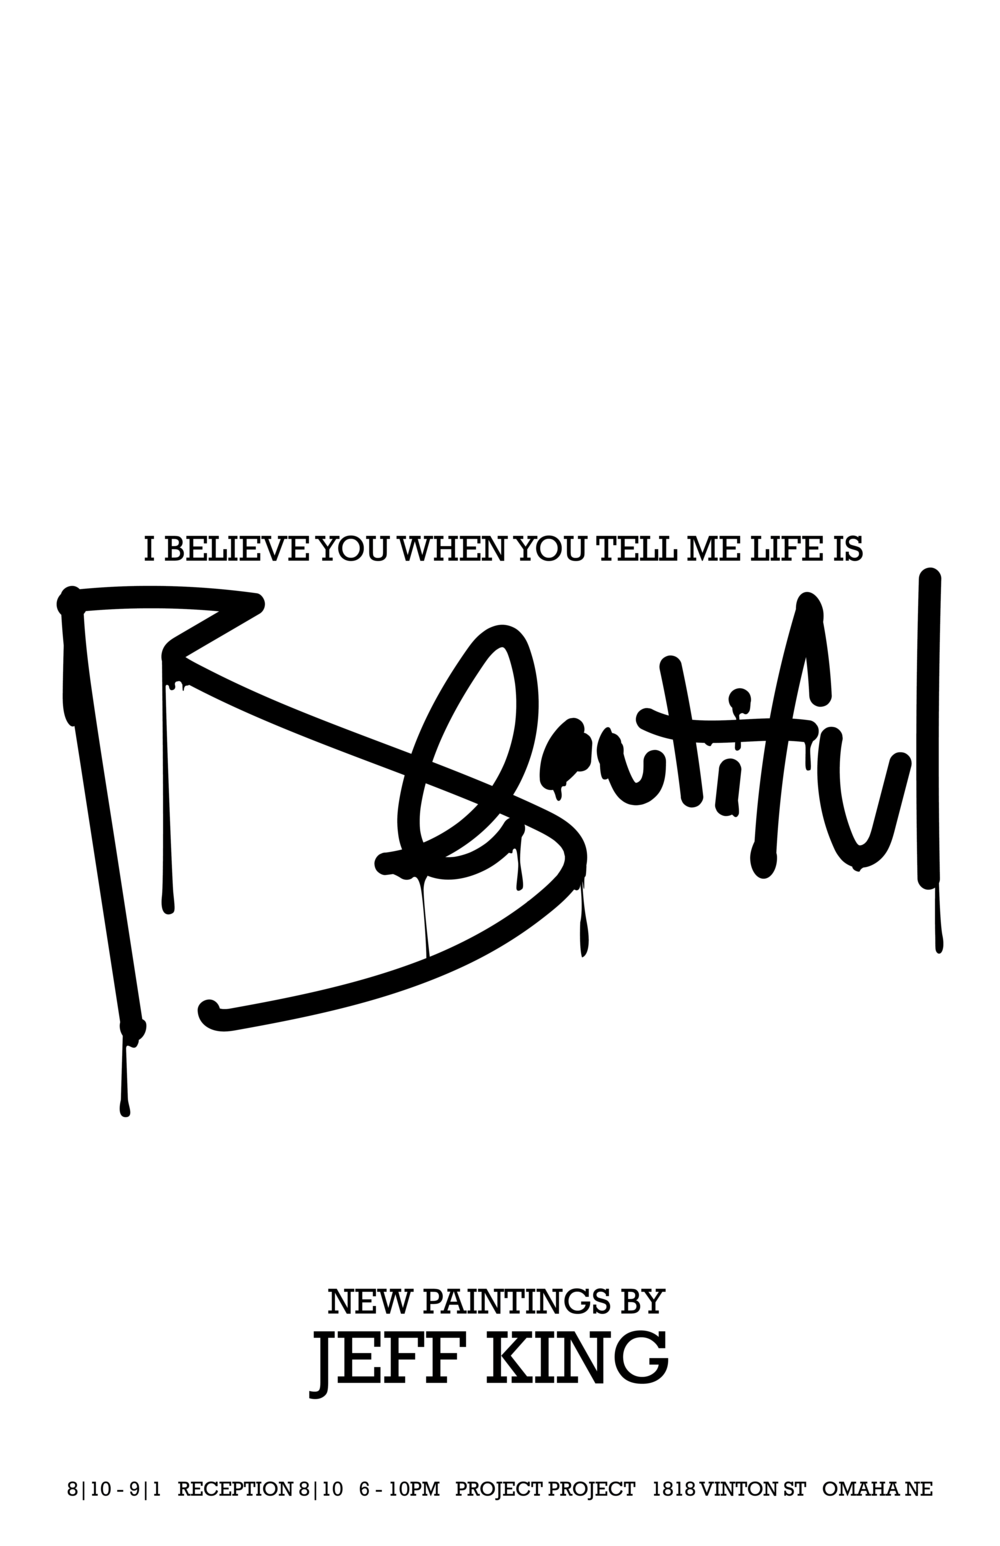 I Believe You When You Tell Me Life is Beautiful - Jeff King